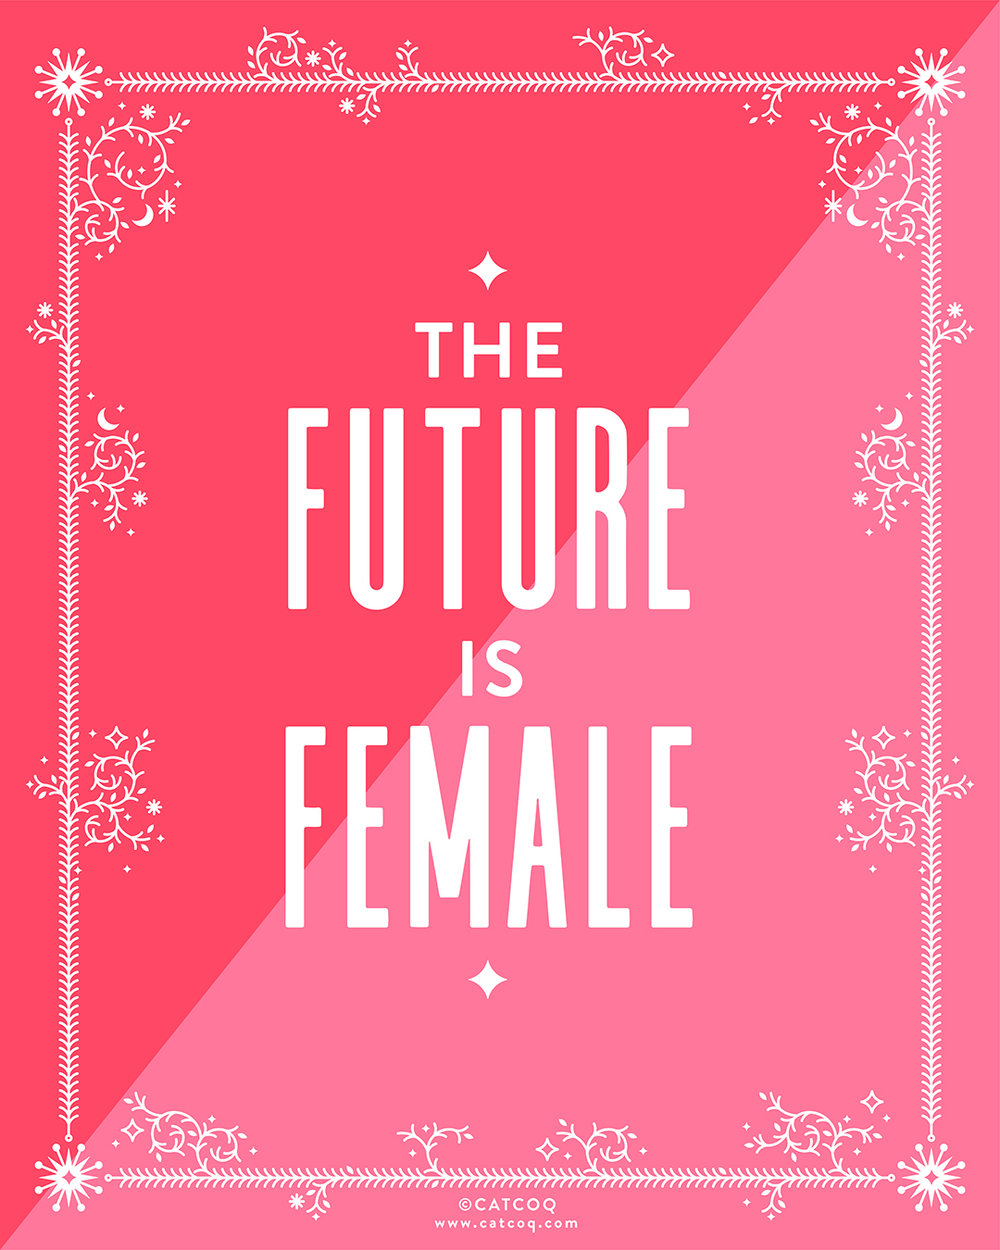 FutureFemale-Artprint-01.jpg